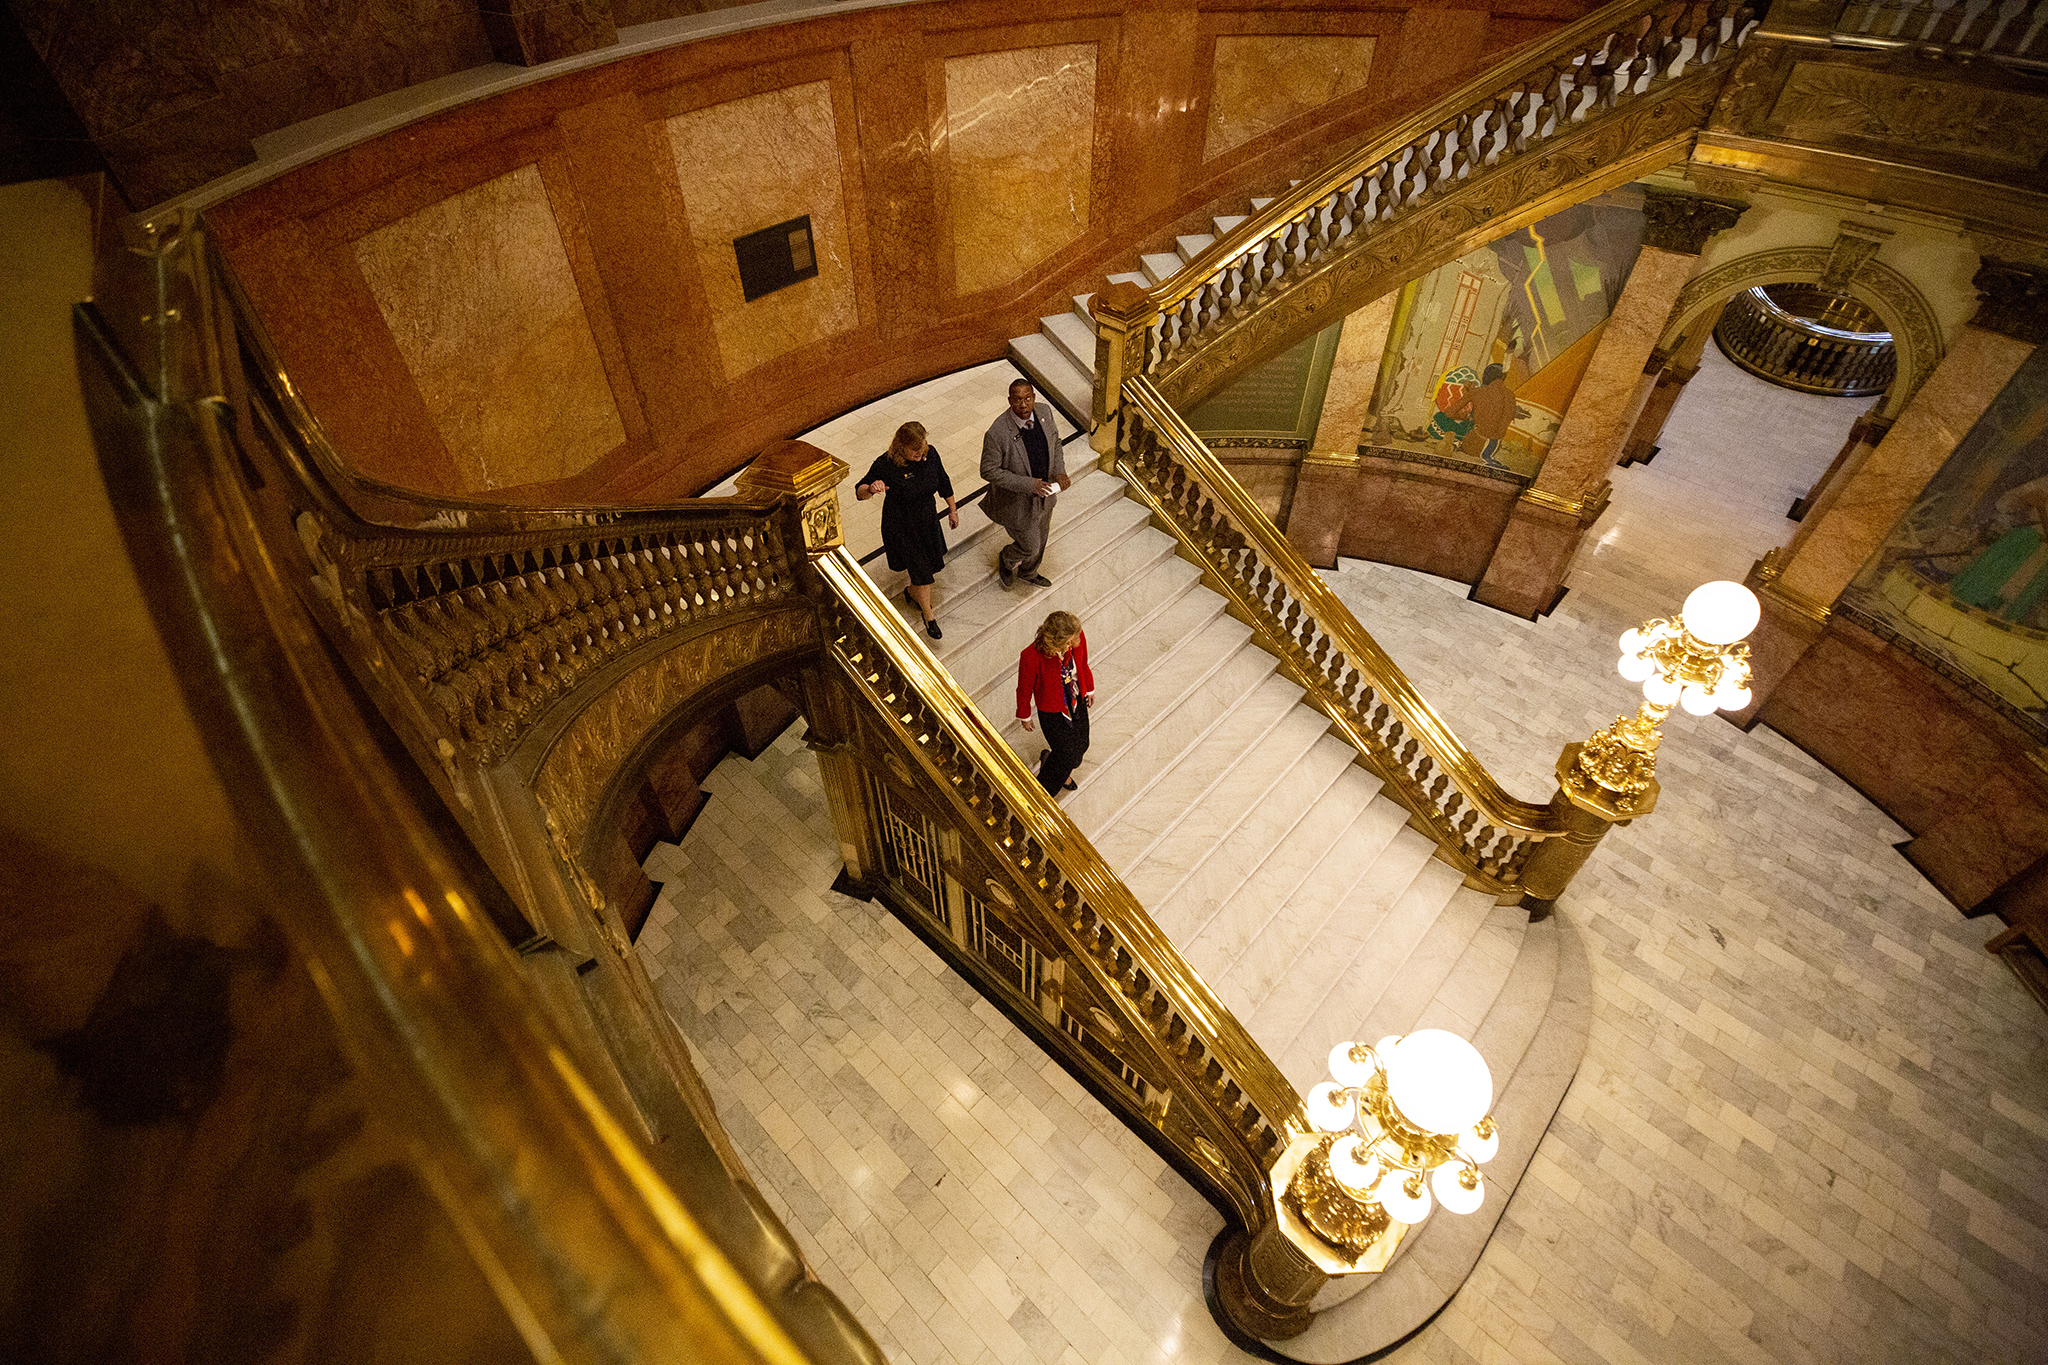 State Reps. Meg Froelich, Jovan Melton and Perry Buck head downstairs to inform Gov. Jared Polis that the House is ready for business on The first day of the 2020 legislative session. The Colorado State Capitol. Jan. 8, 2020.